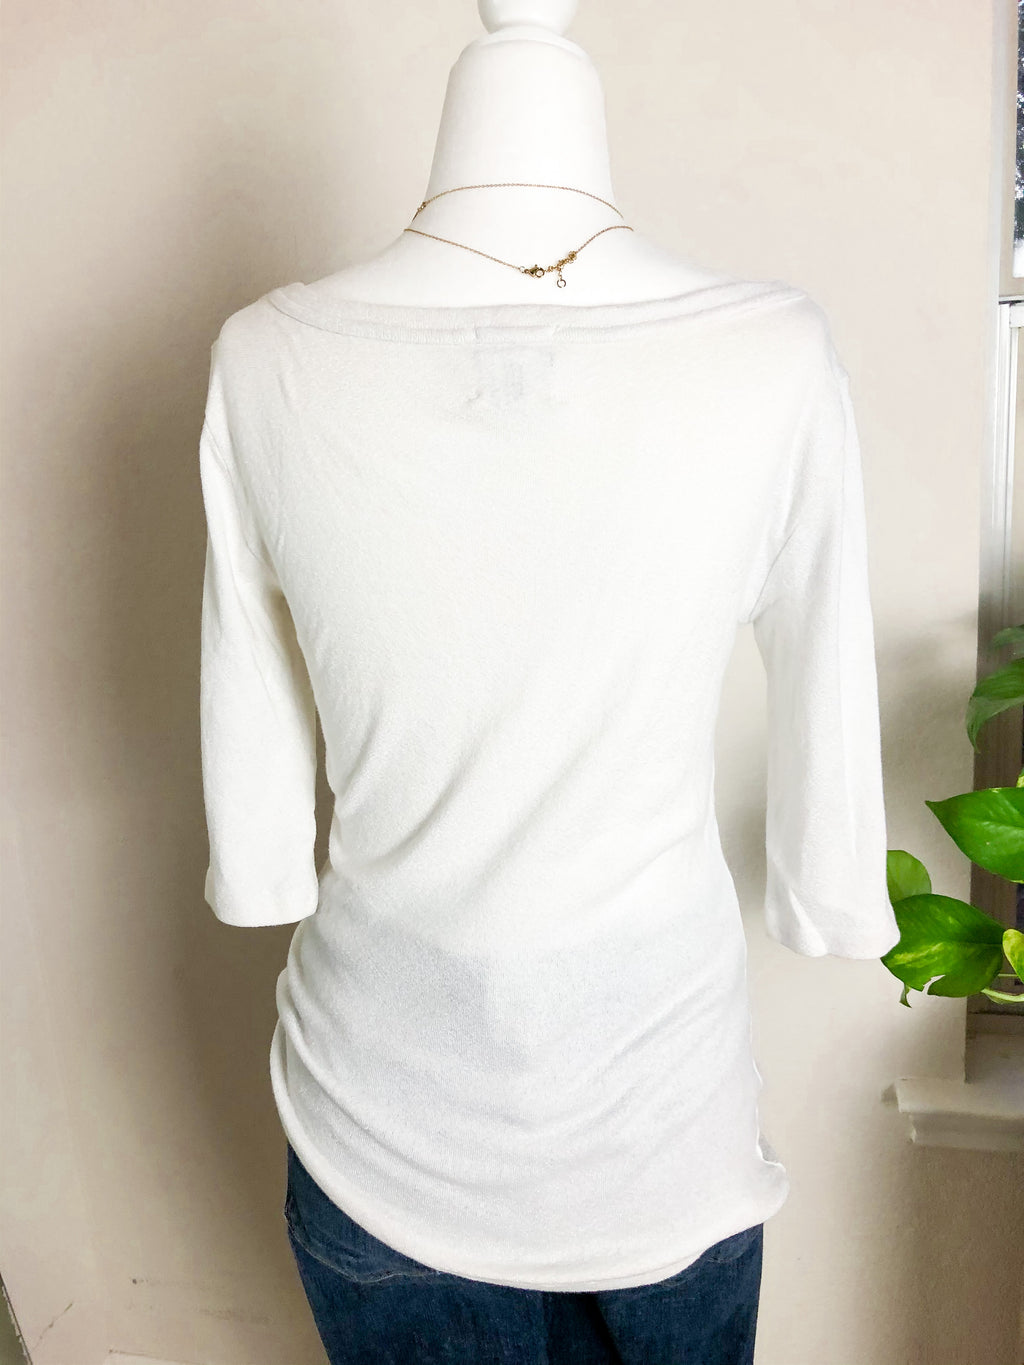 Anthropologie Michael Stars White Sparkle Short Sleeve Top